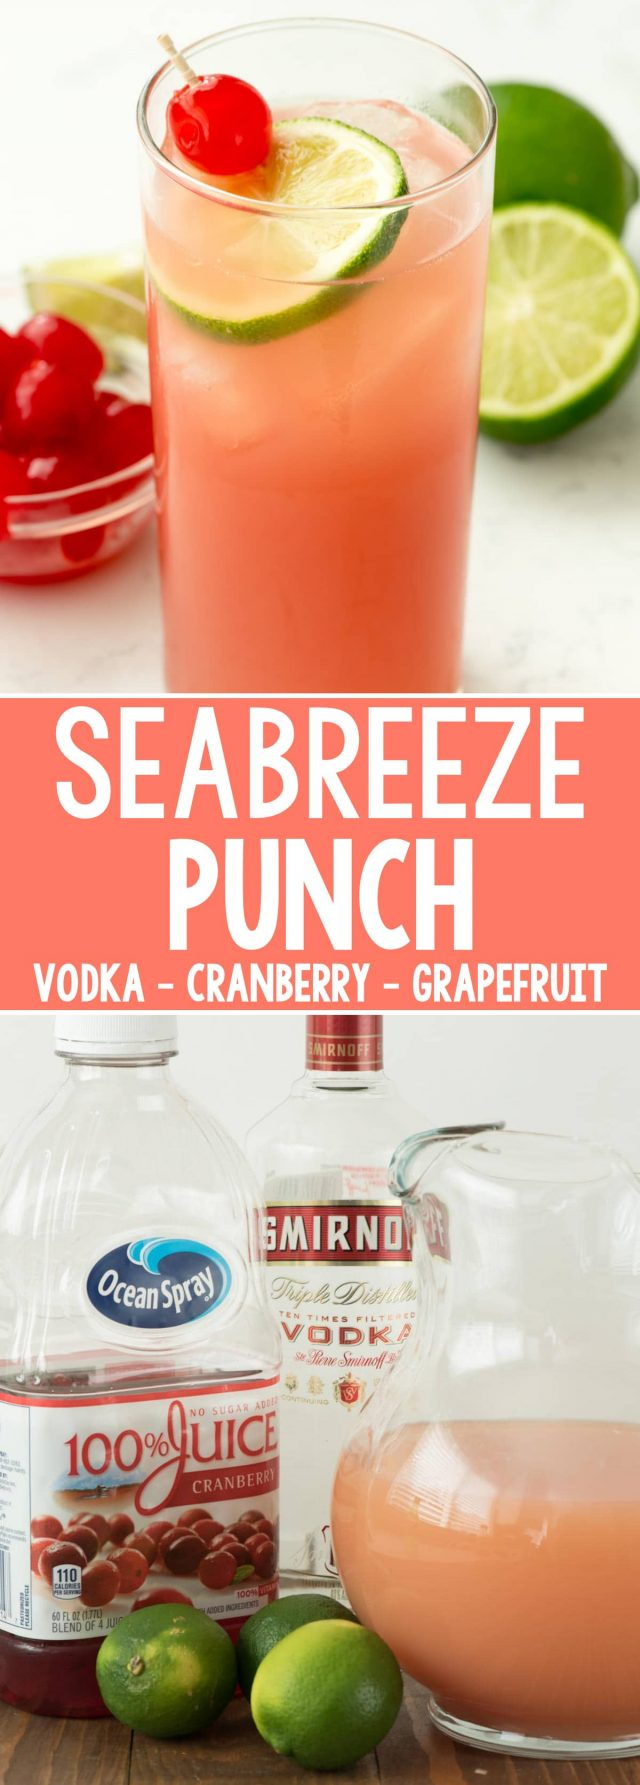 Seabreeze cocktail punch crazy for crust for Easy vodka mix drinks